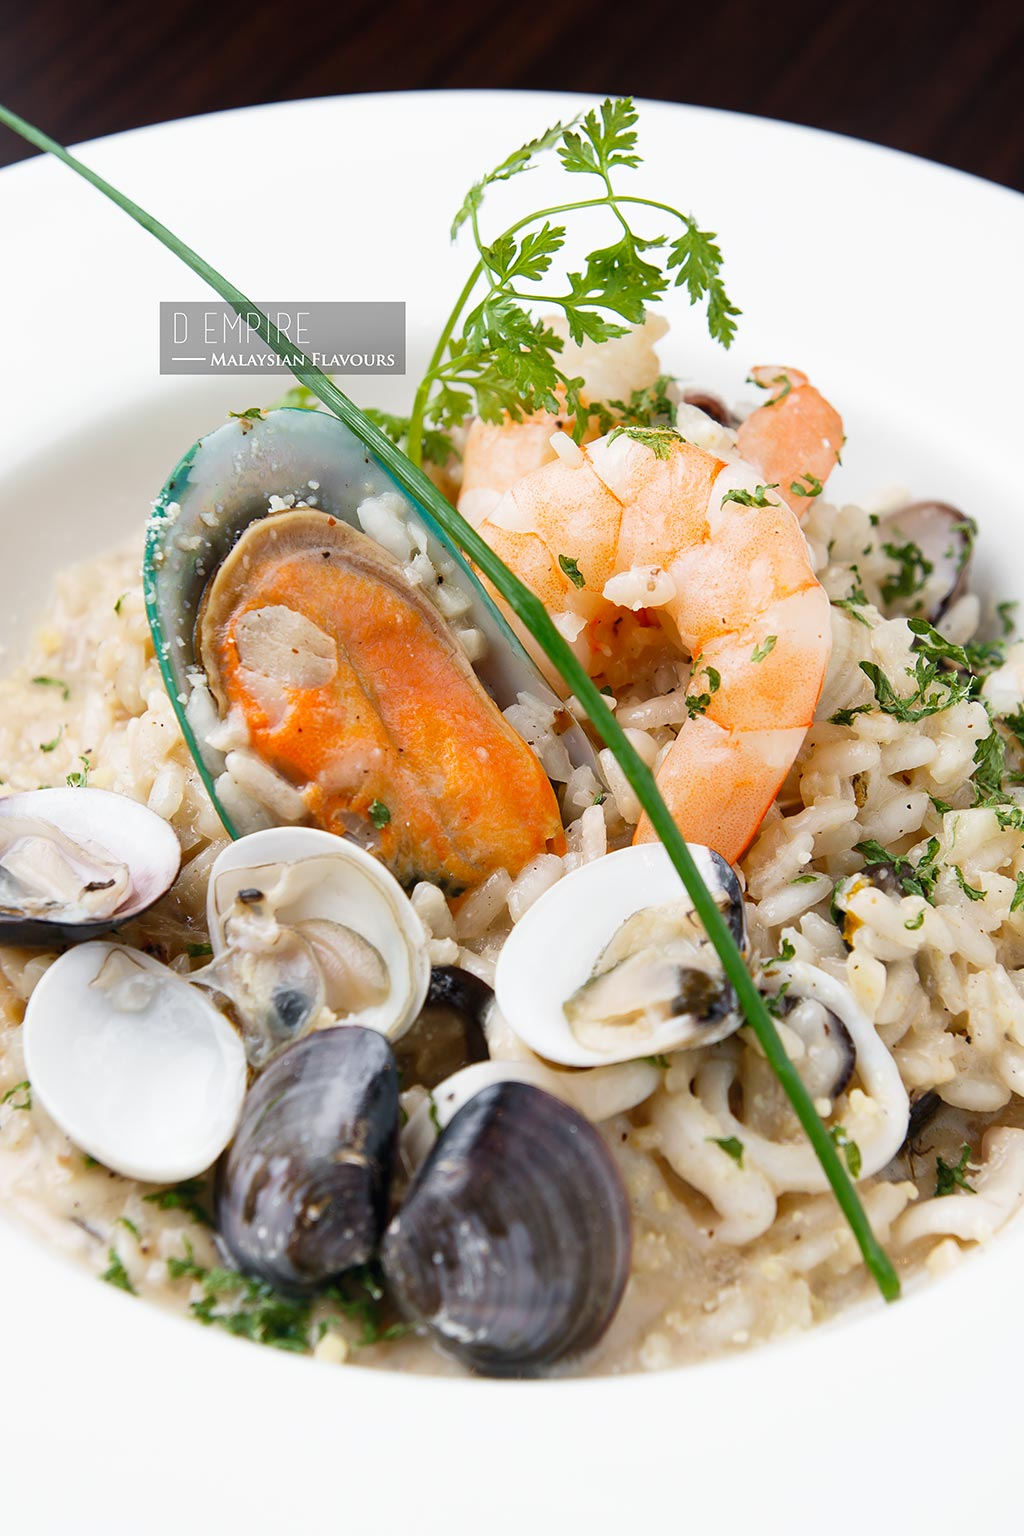 D Empire European Cuisine seafood risotto